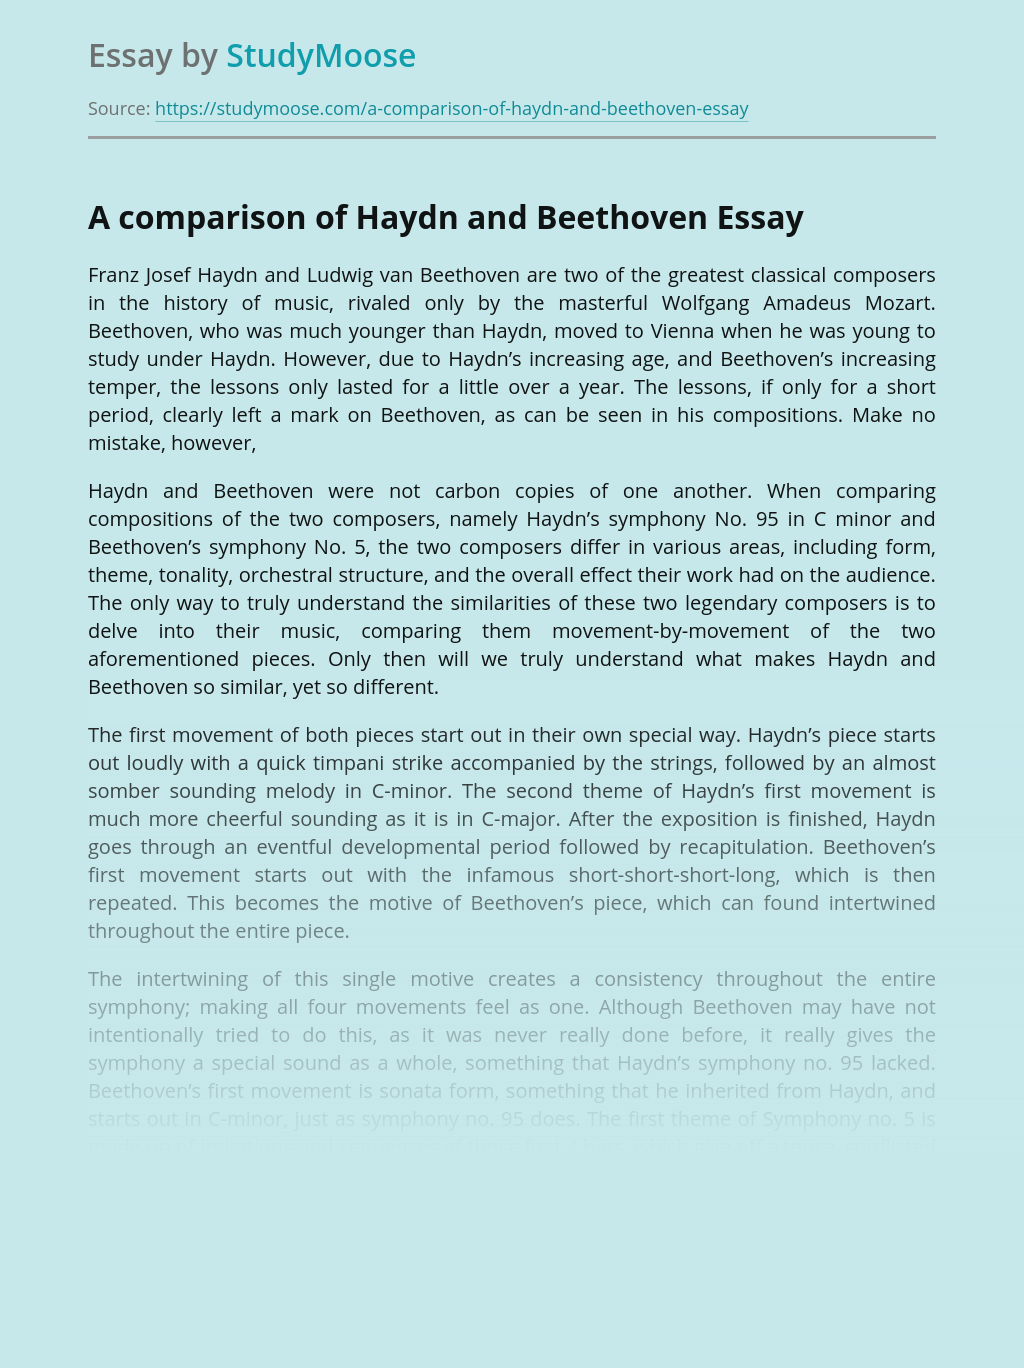 A Comparison of Haydn and Beethoven